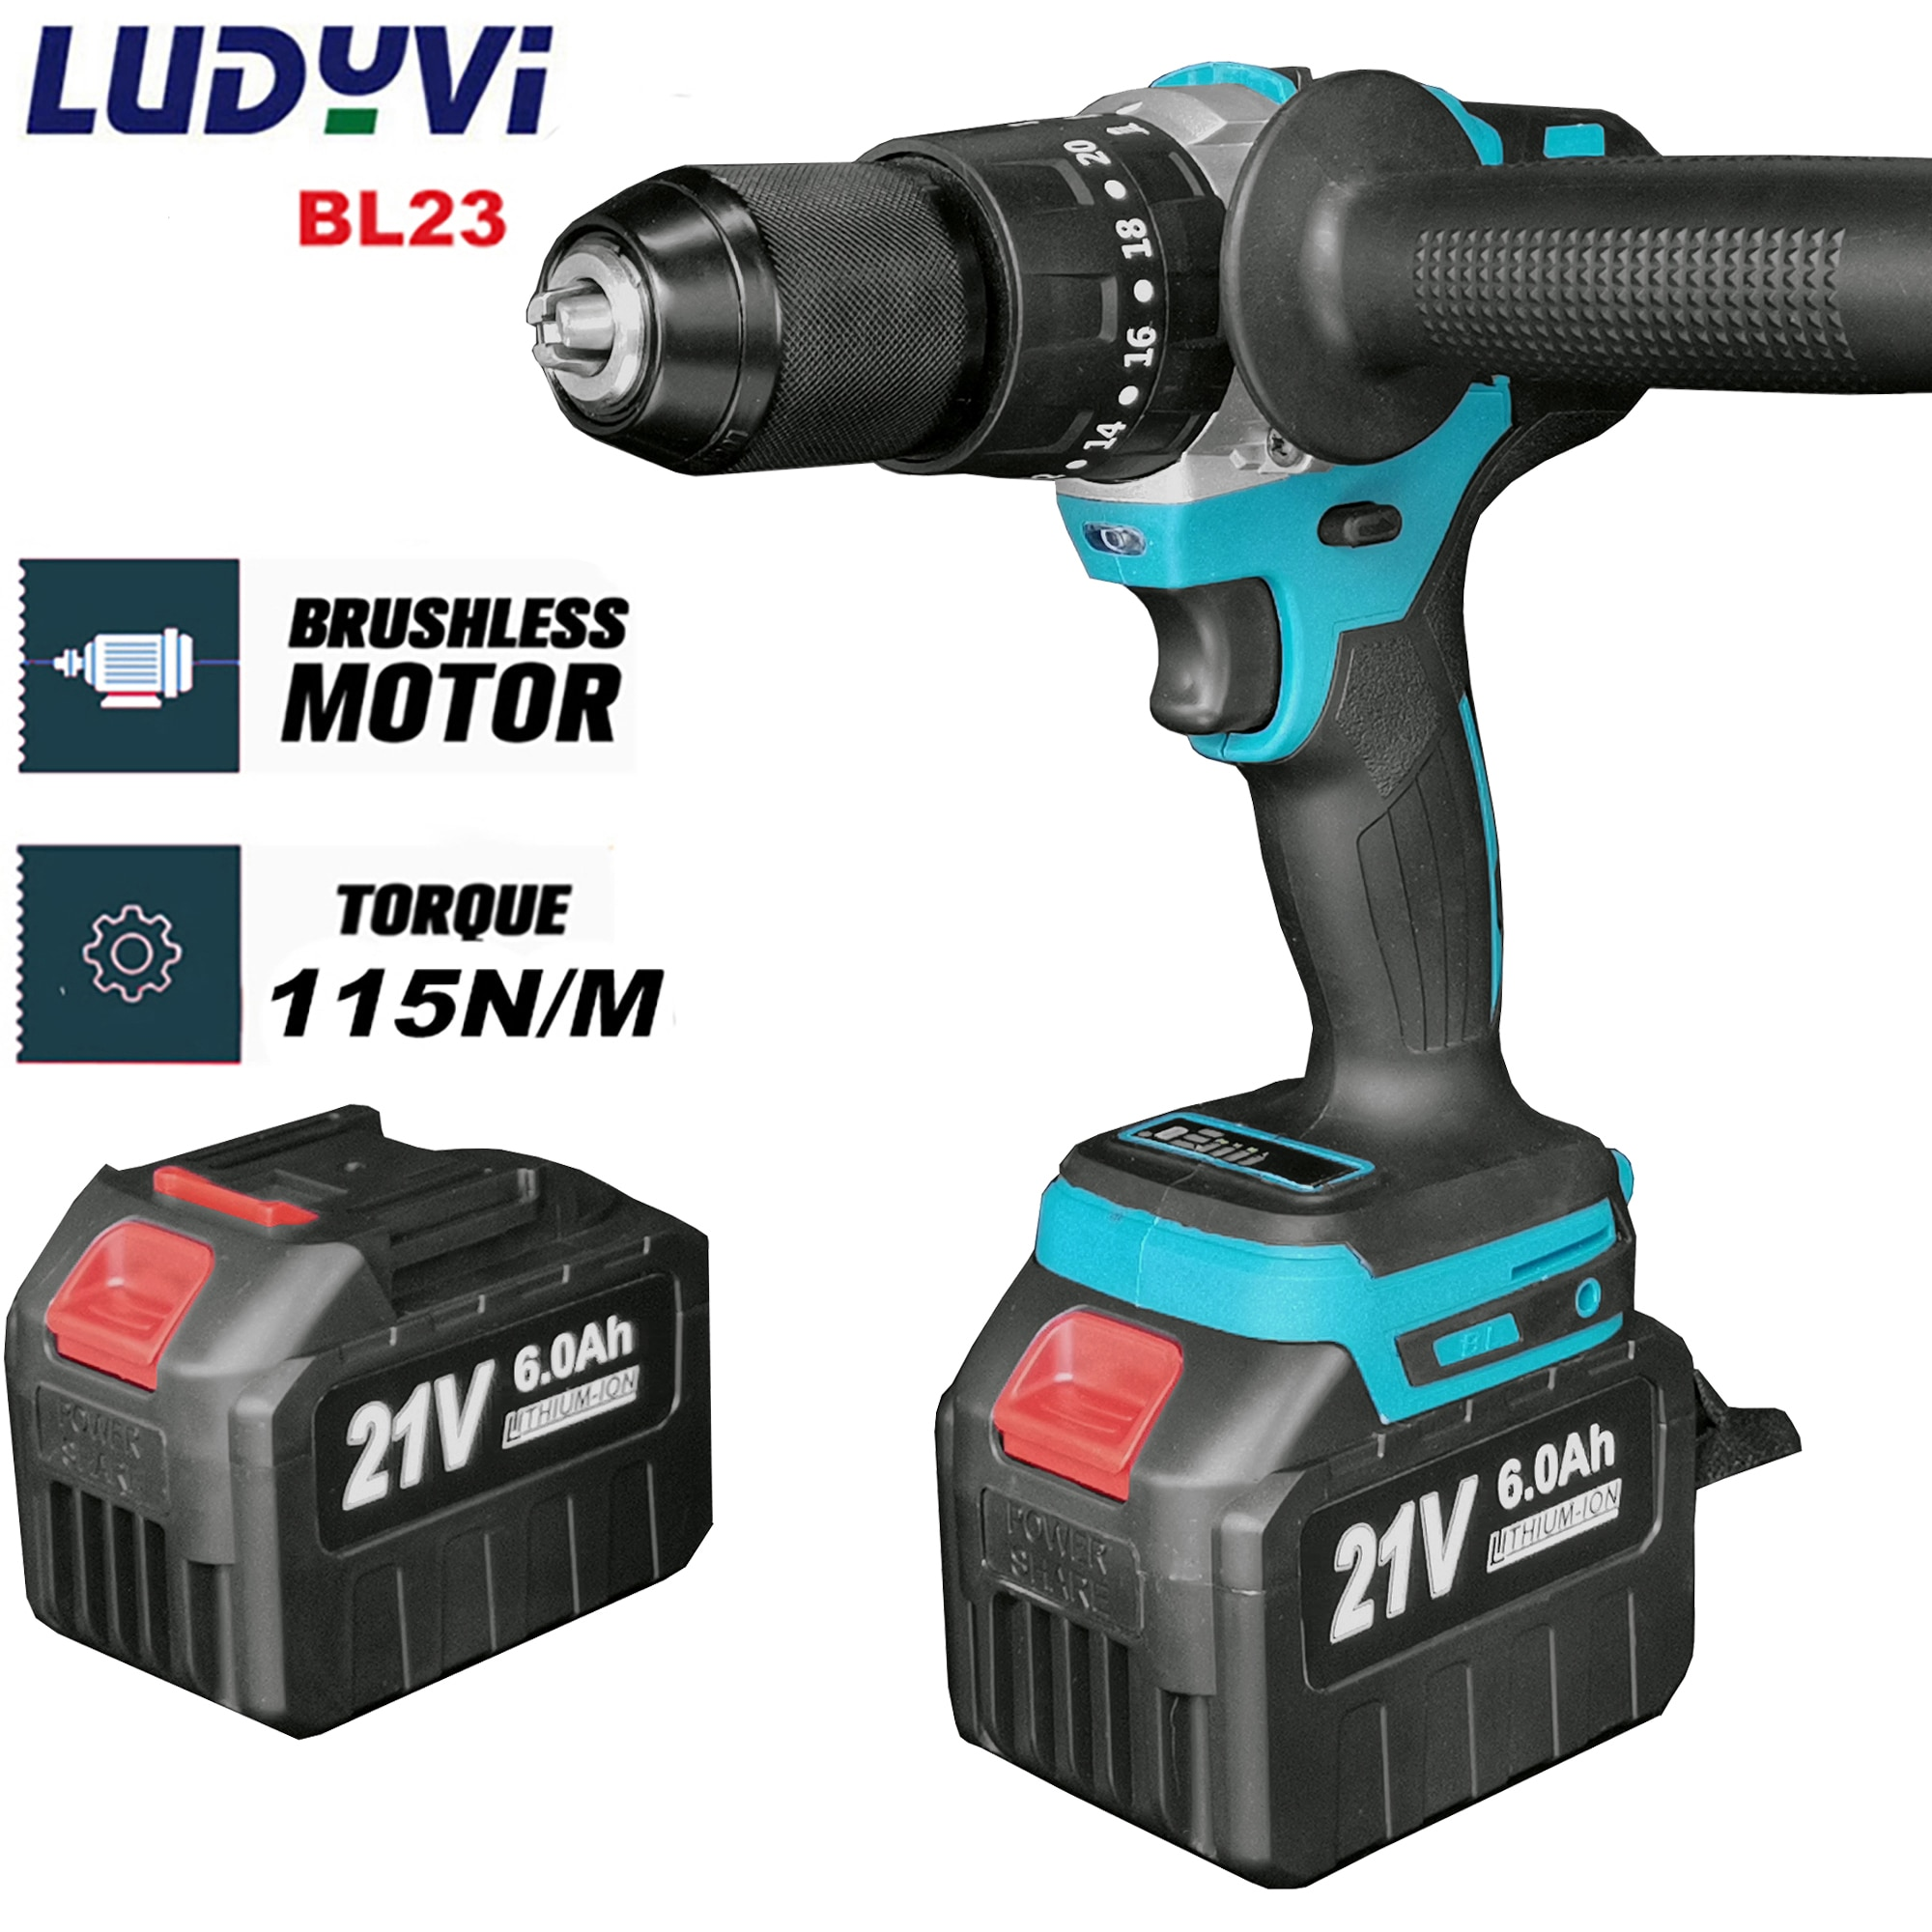 cordless drill 21v power tools 3 in 1 with impact function rotary tool electric screwdriver 21V 13MM Brushless Electric Drill 115N/M 4000mah Battery Cordless Screwdriver With Impact Function Can Drill Ice Power Tools